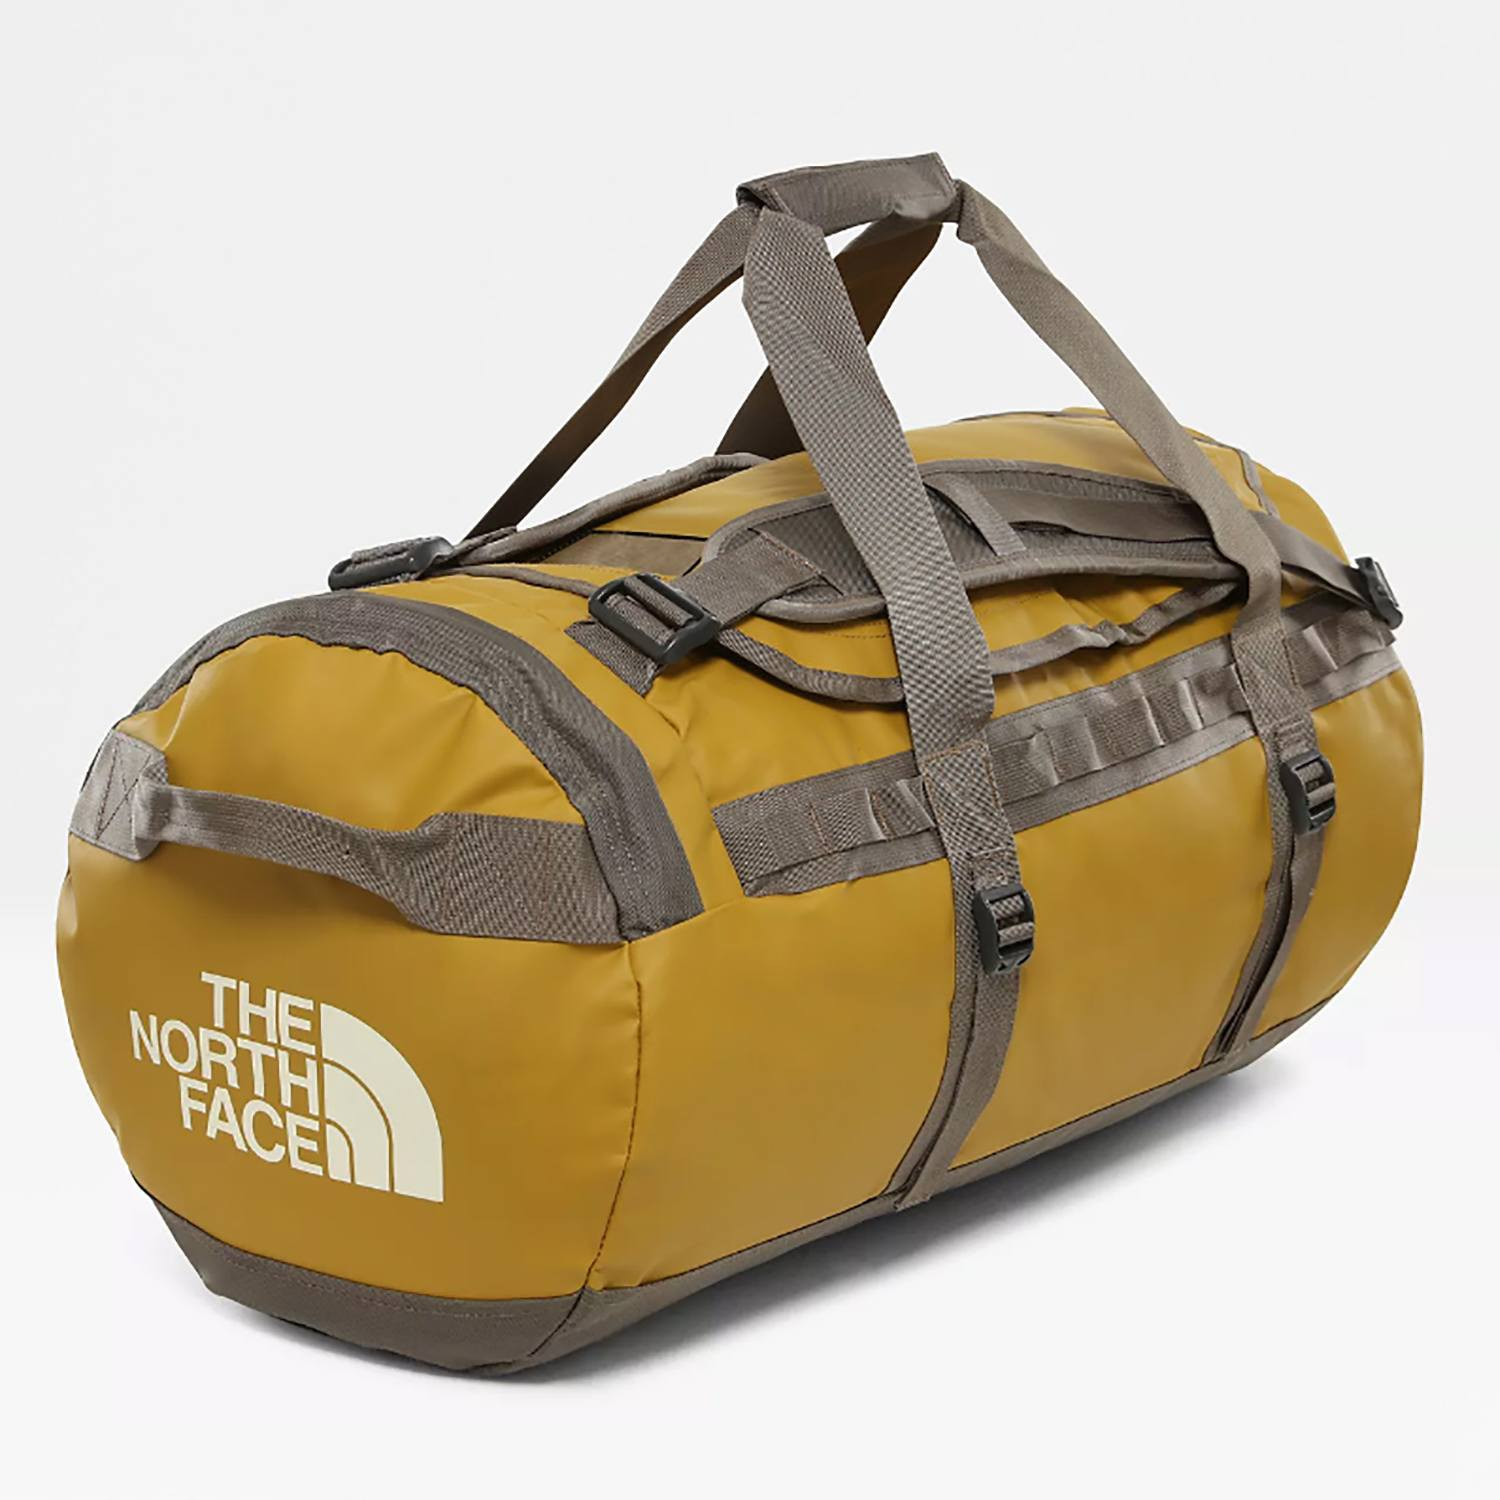 THE NORTH FACE BASE CAMP DUFFEL - M (9000036621_41135)